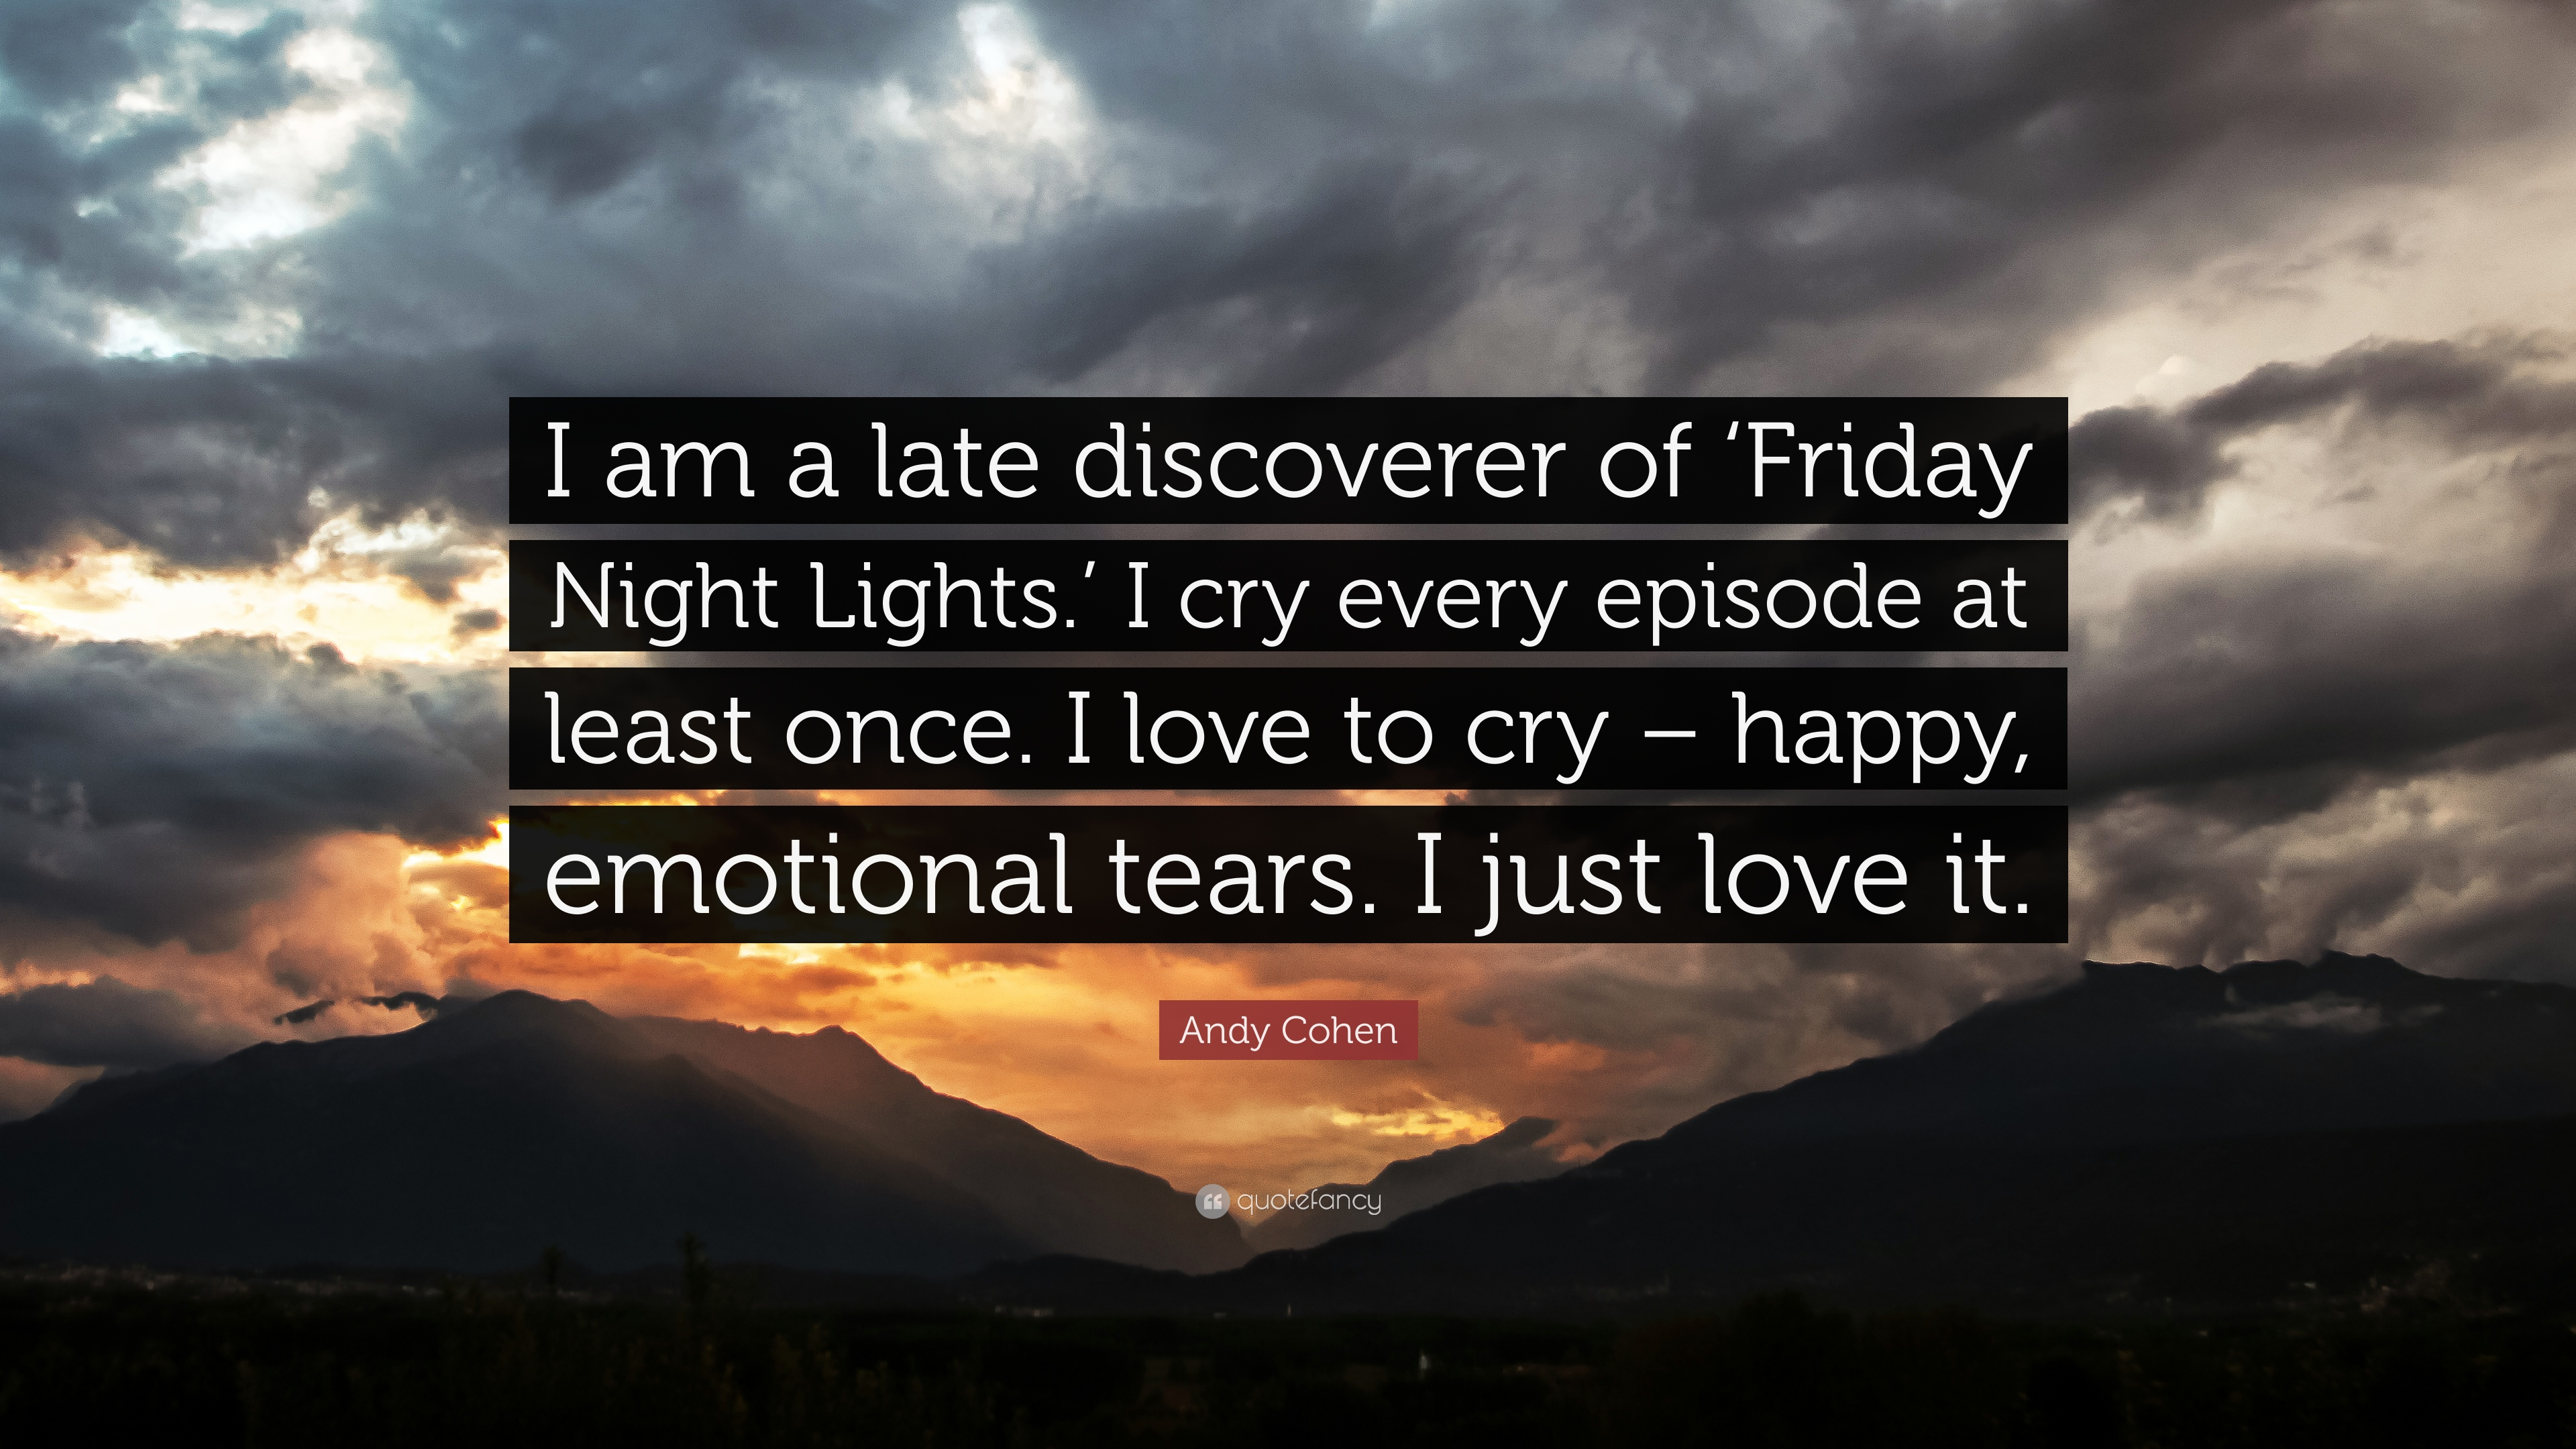 Andy Cohen Quote I Am A Late Discoverer Of Friday Night Lights I Cry Every Episode At Least Once I Love To Cry Happy Emotional Tea 7 Wallpapers Quotefancy